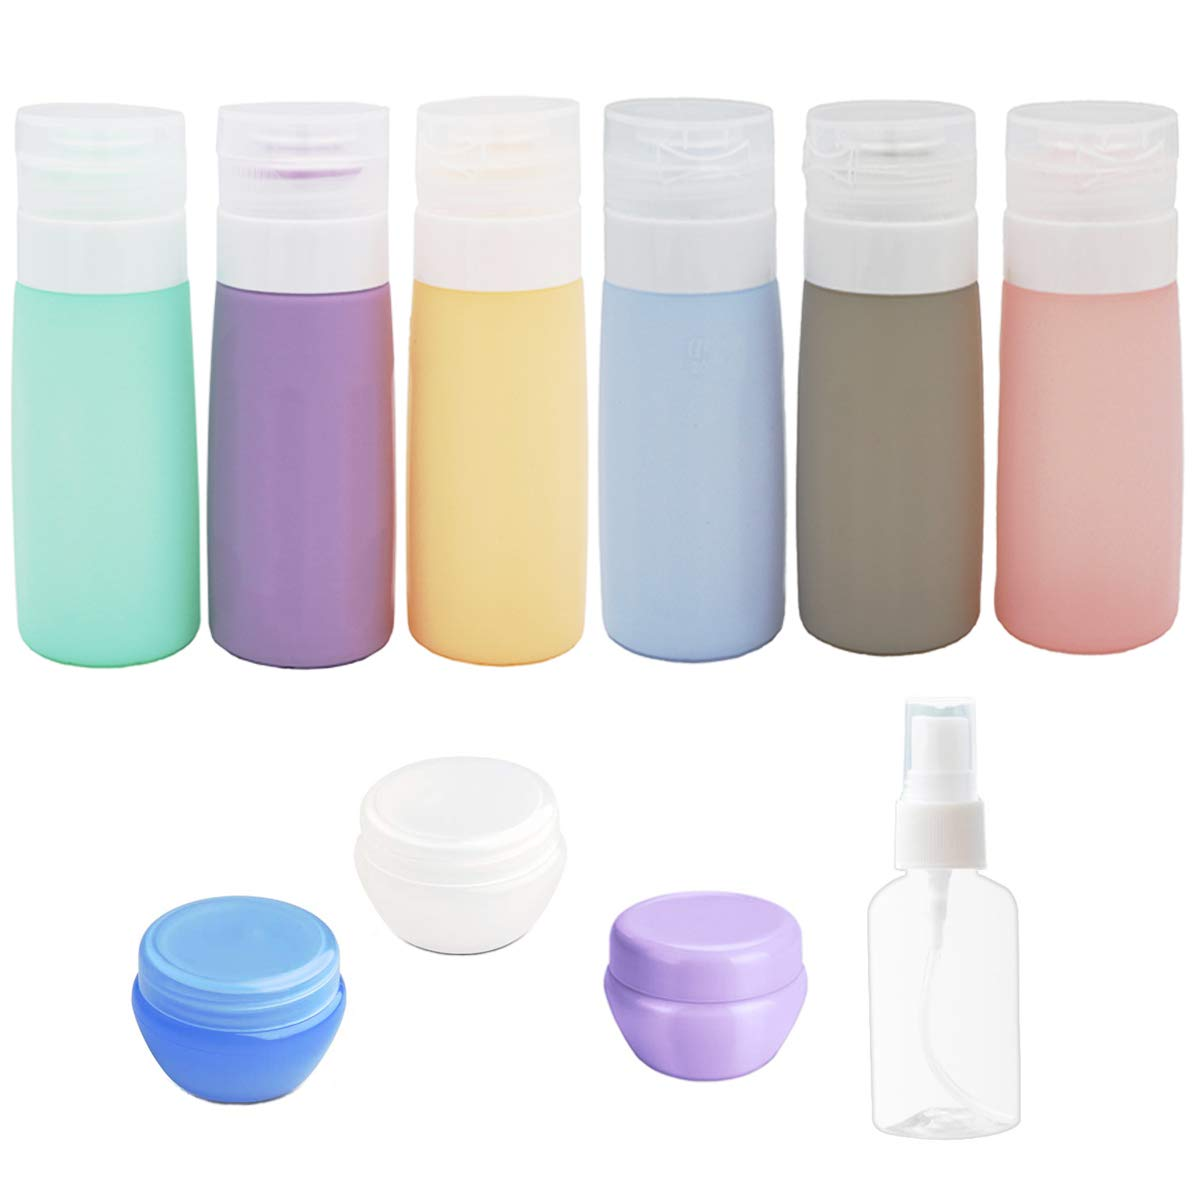 10Pack Travel Bottles Set -3Oz Leakproof Silicone Travel Bottles, Squeezable Travel Size Containers, TSA Approved Travel Toiletry Bottles, Travel Containers for Toiletries for Shampoo Lotion Soap